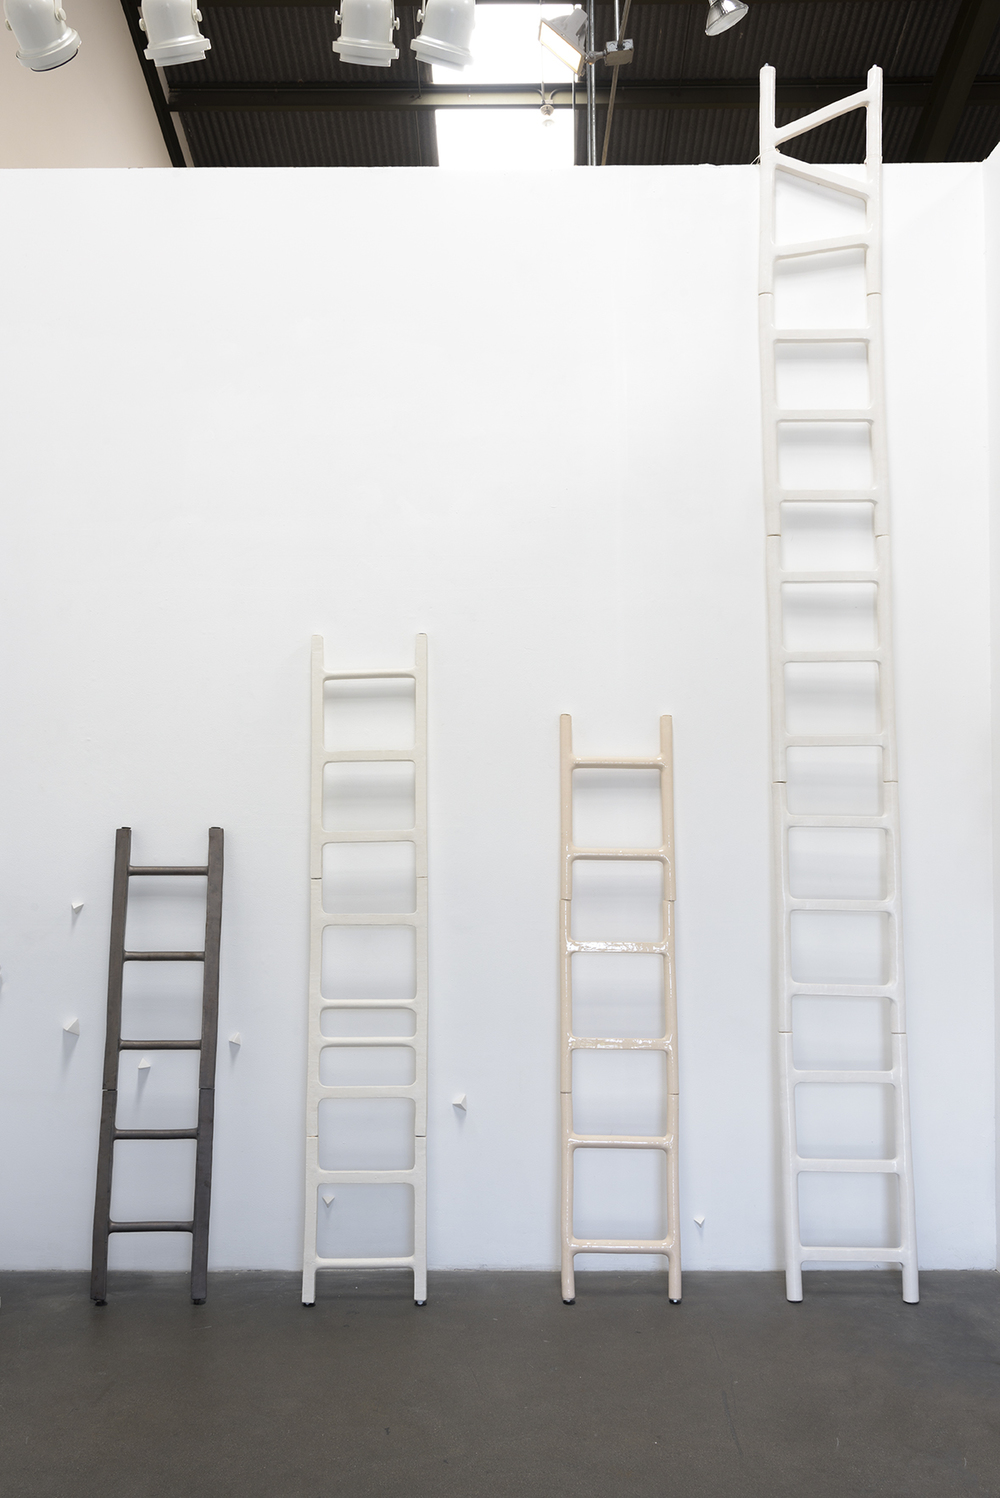 Elizabeth Orleans (Glazed ceramic ladders: Left to Right)  Proceed , 2016: 58 x14 x2 inches  Elevate , 2016: 82.5 x 15 x 1.5 inches  Peach Progression , 2016: 72 x 14.5 x 1.5 inches  Escape , 2016: 158 x 15.75 x 1.75 inches